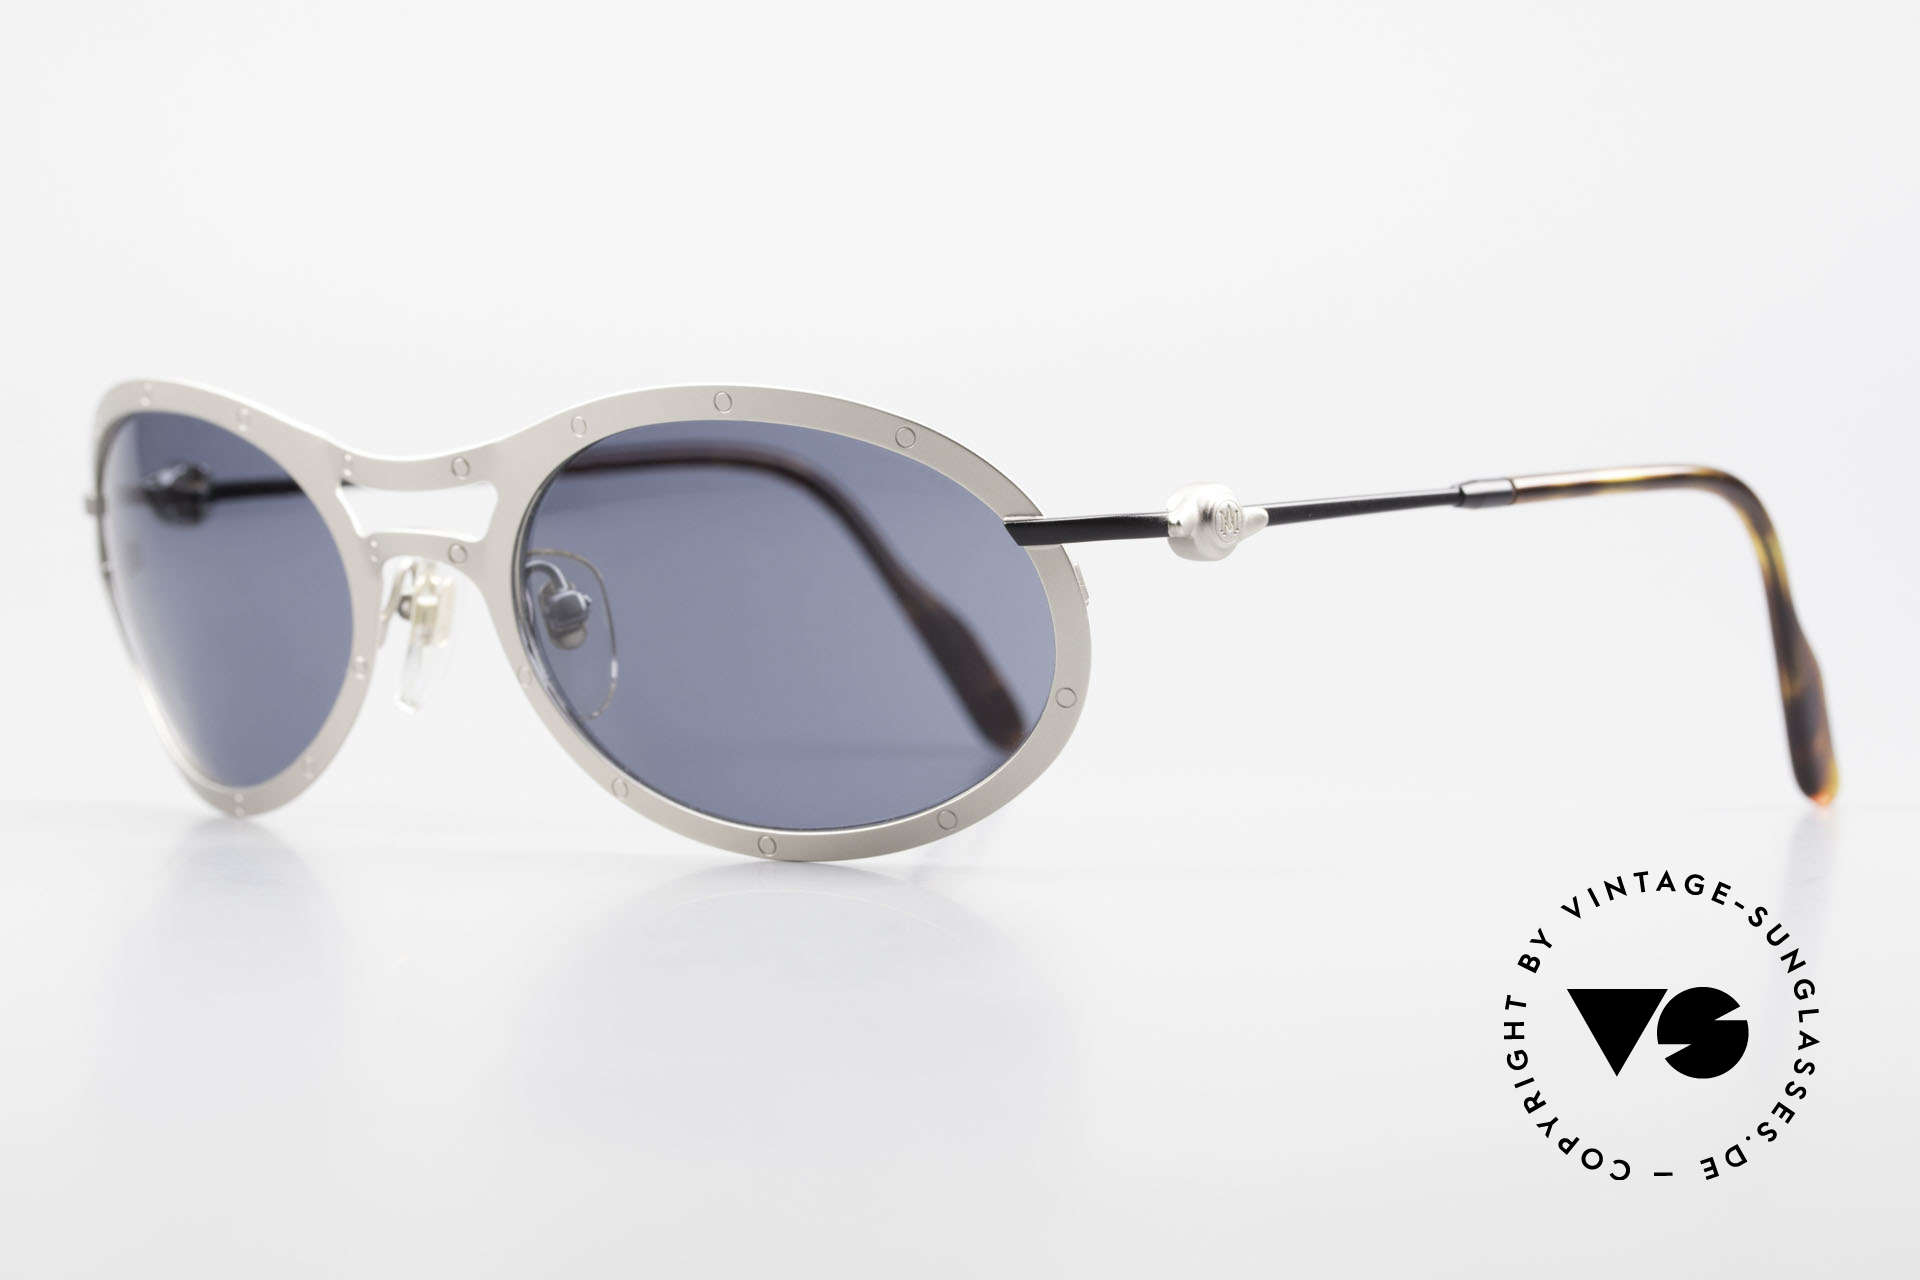 Aston Martin AM33 Sporty Men's Sunglasses 90's, sporty and elegant classic: James Bond 'gentlemen style', Made for Men